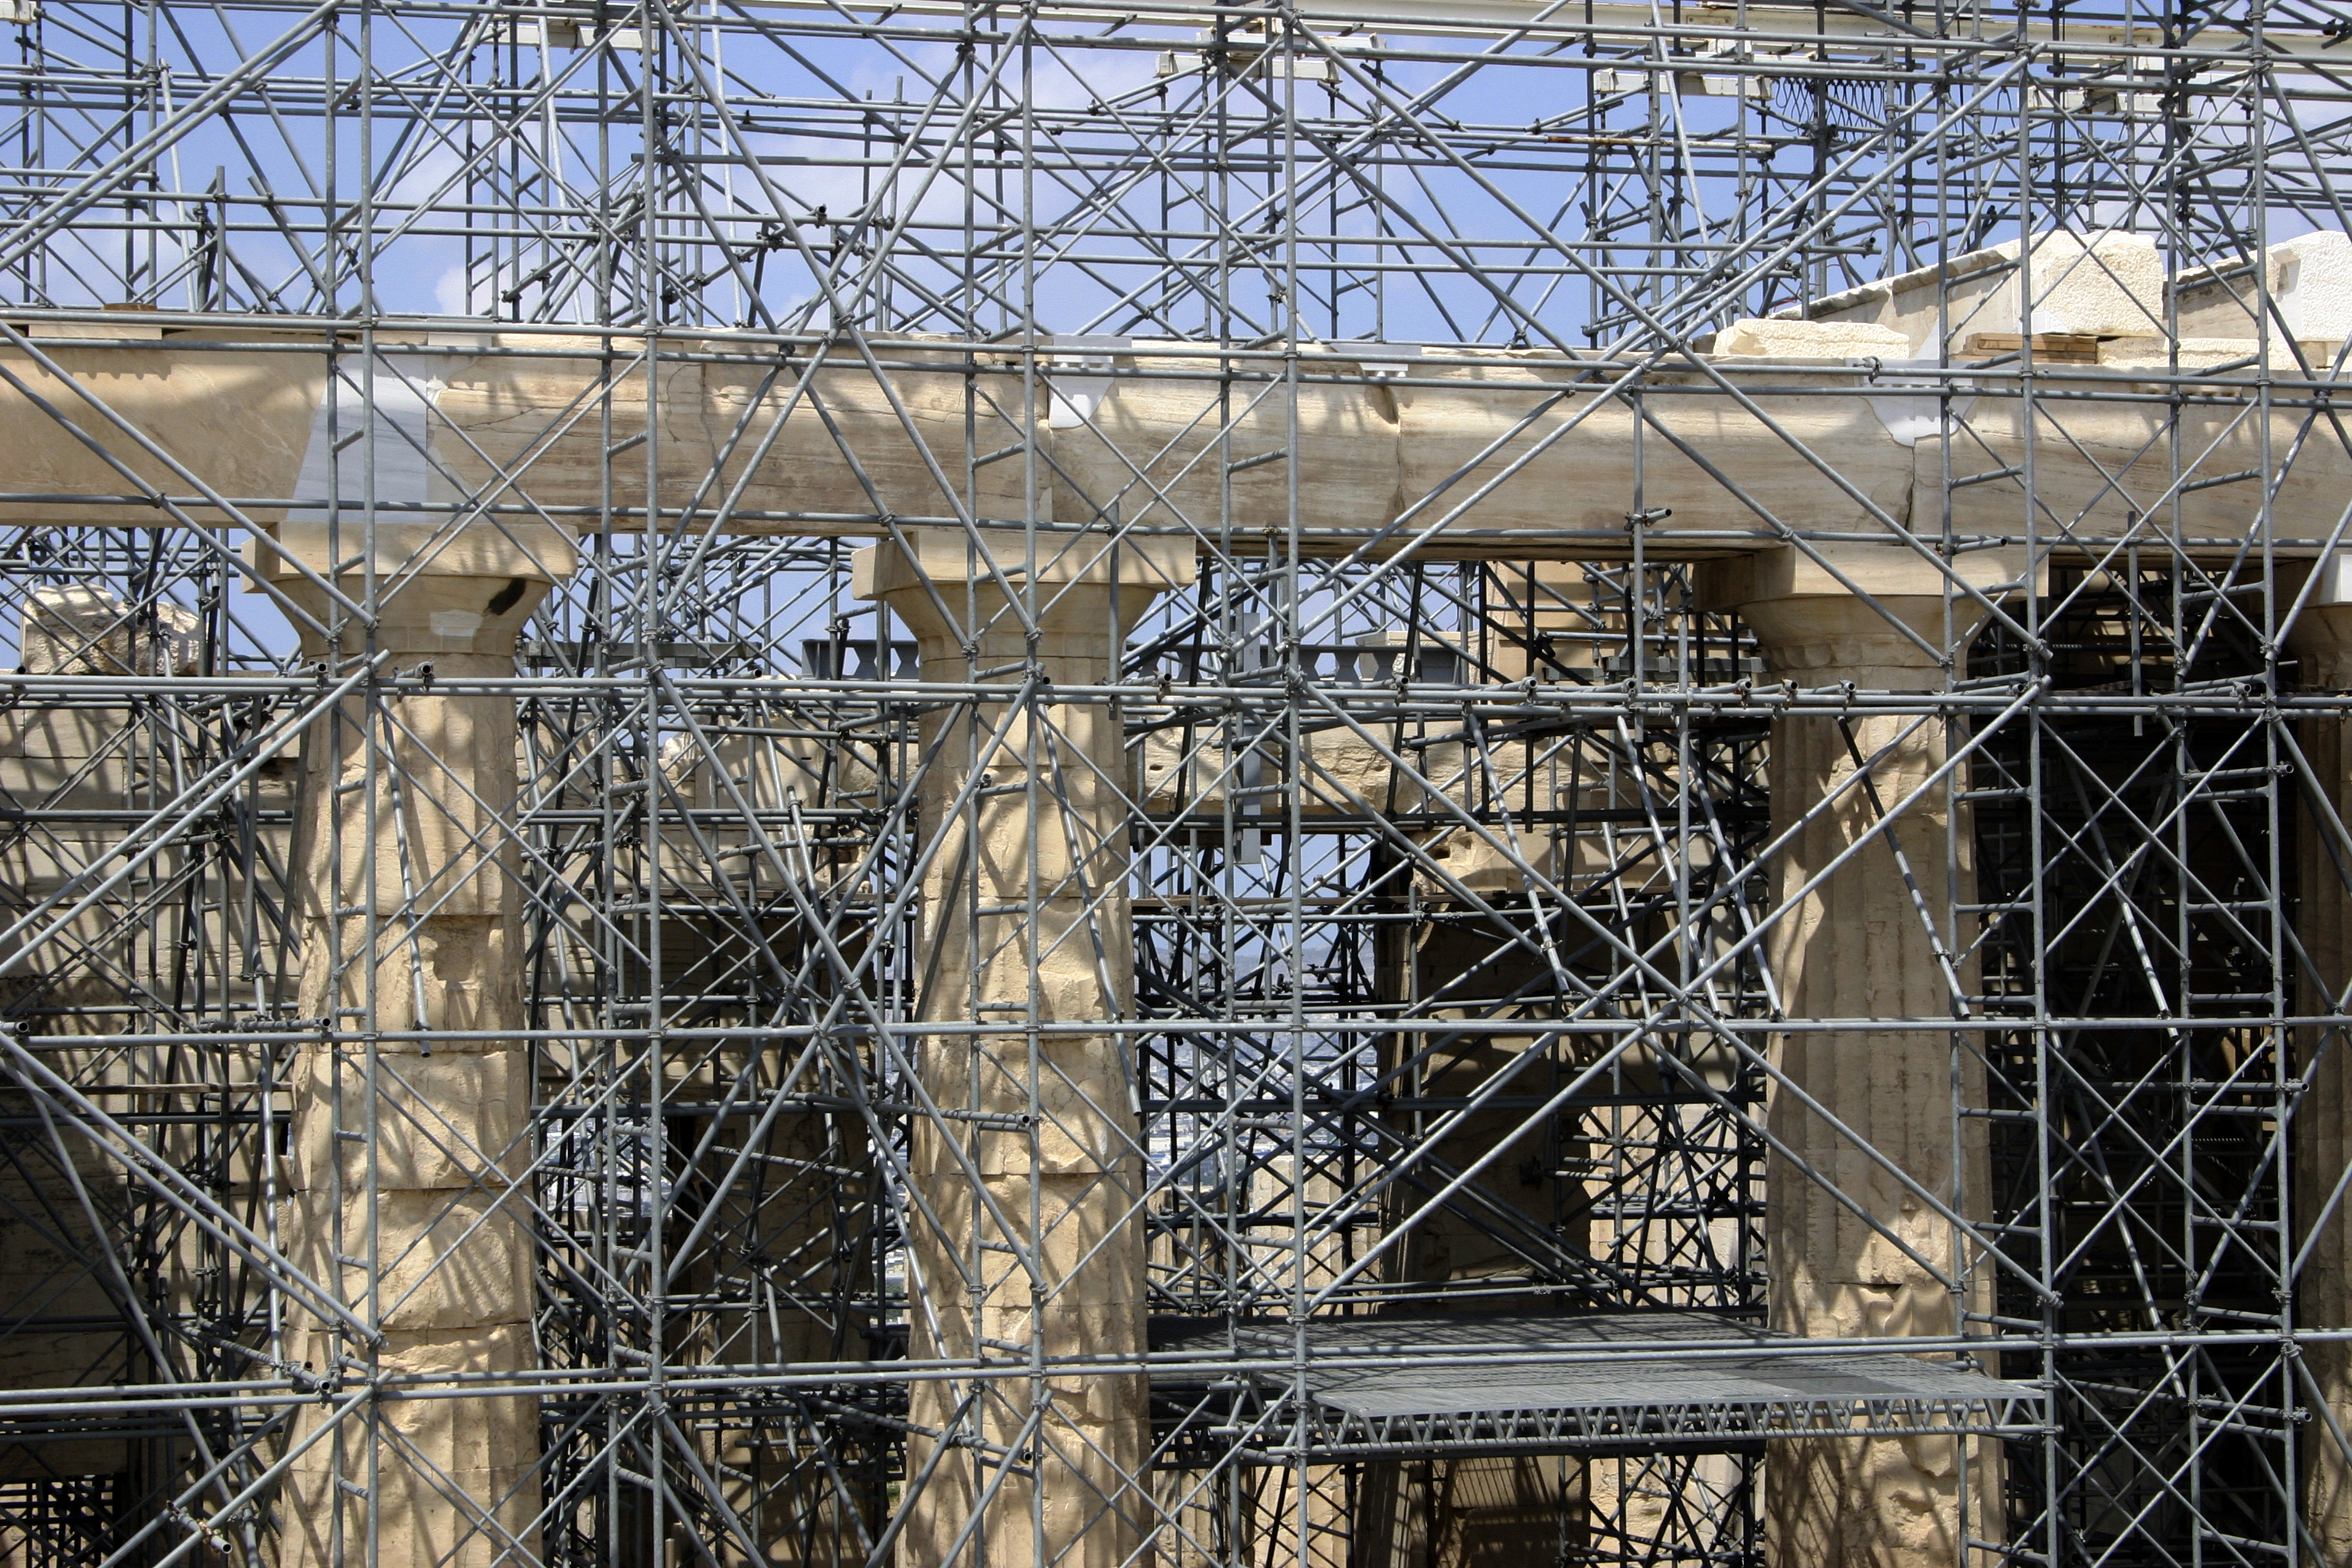 Parthenon scafold, Athens, Greece